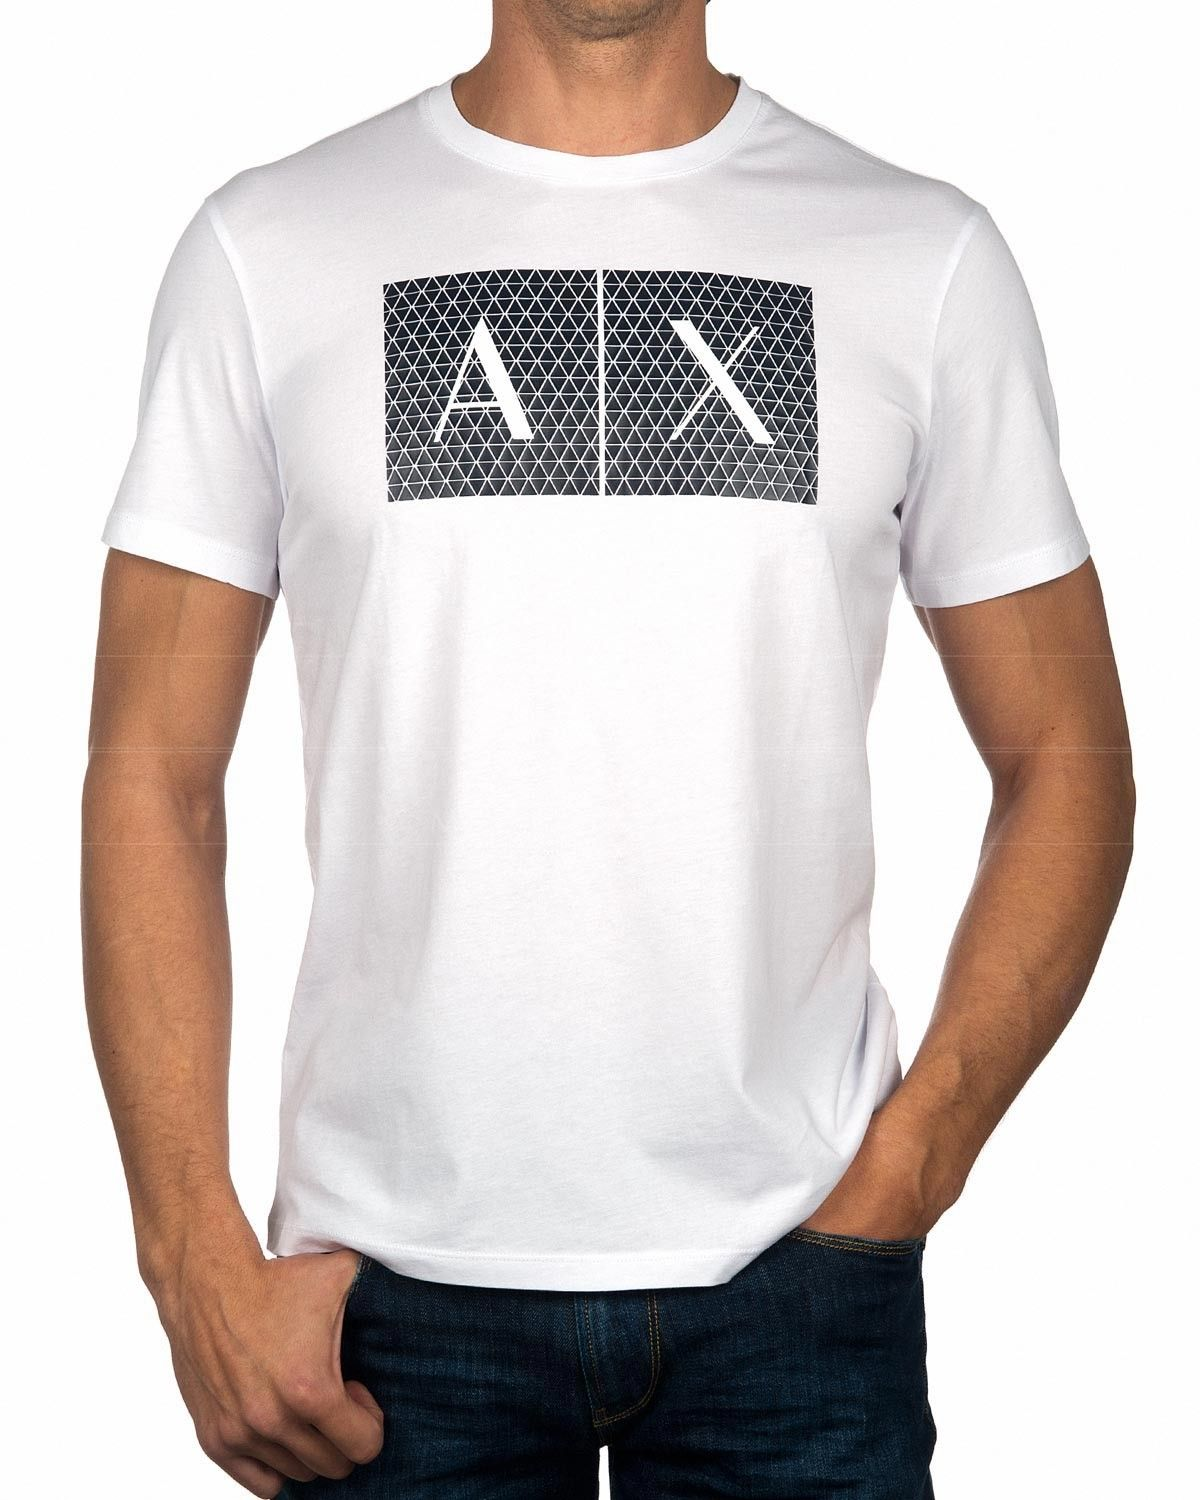 68062002a1c Camiseta ARMANI EXCHANGE ® Blanco y Negro